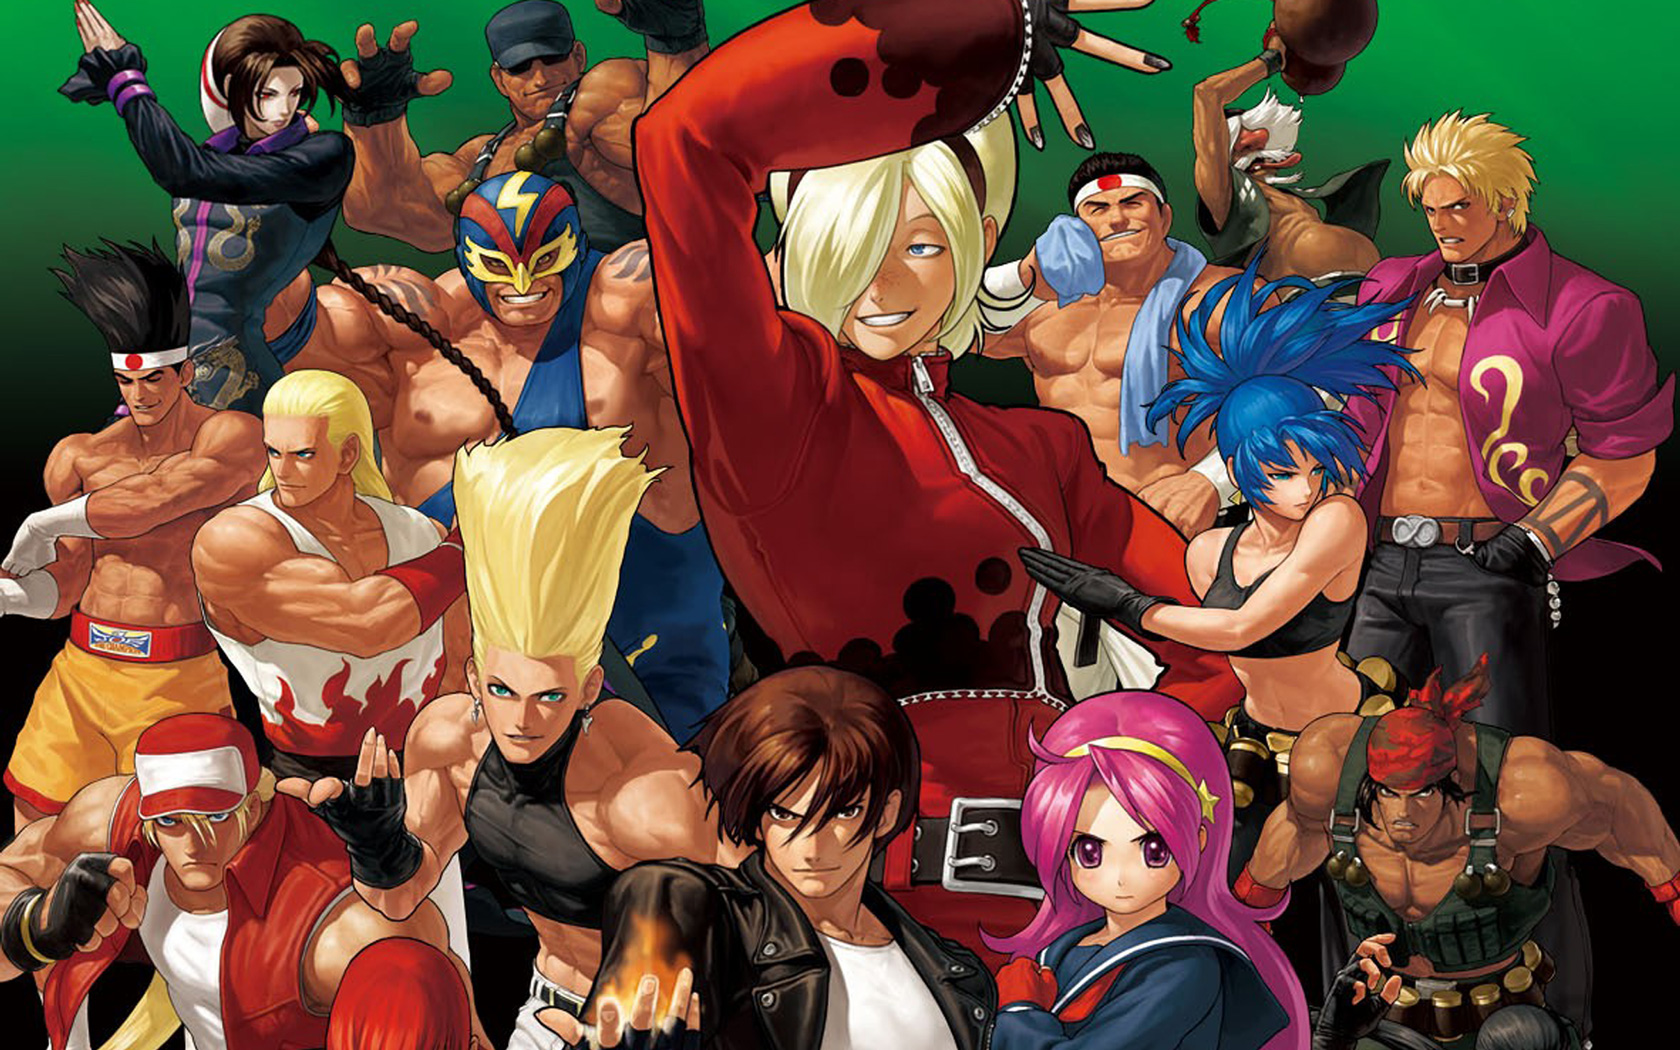 Free The King of Fighters XII Wallpaper in 1680x1050